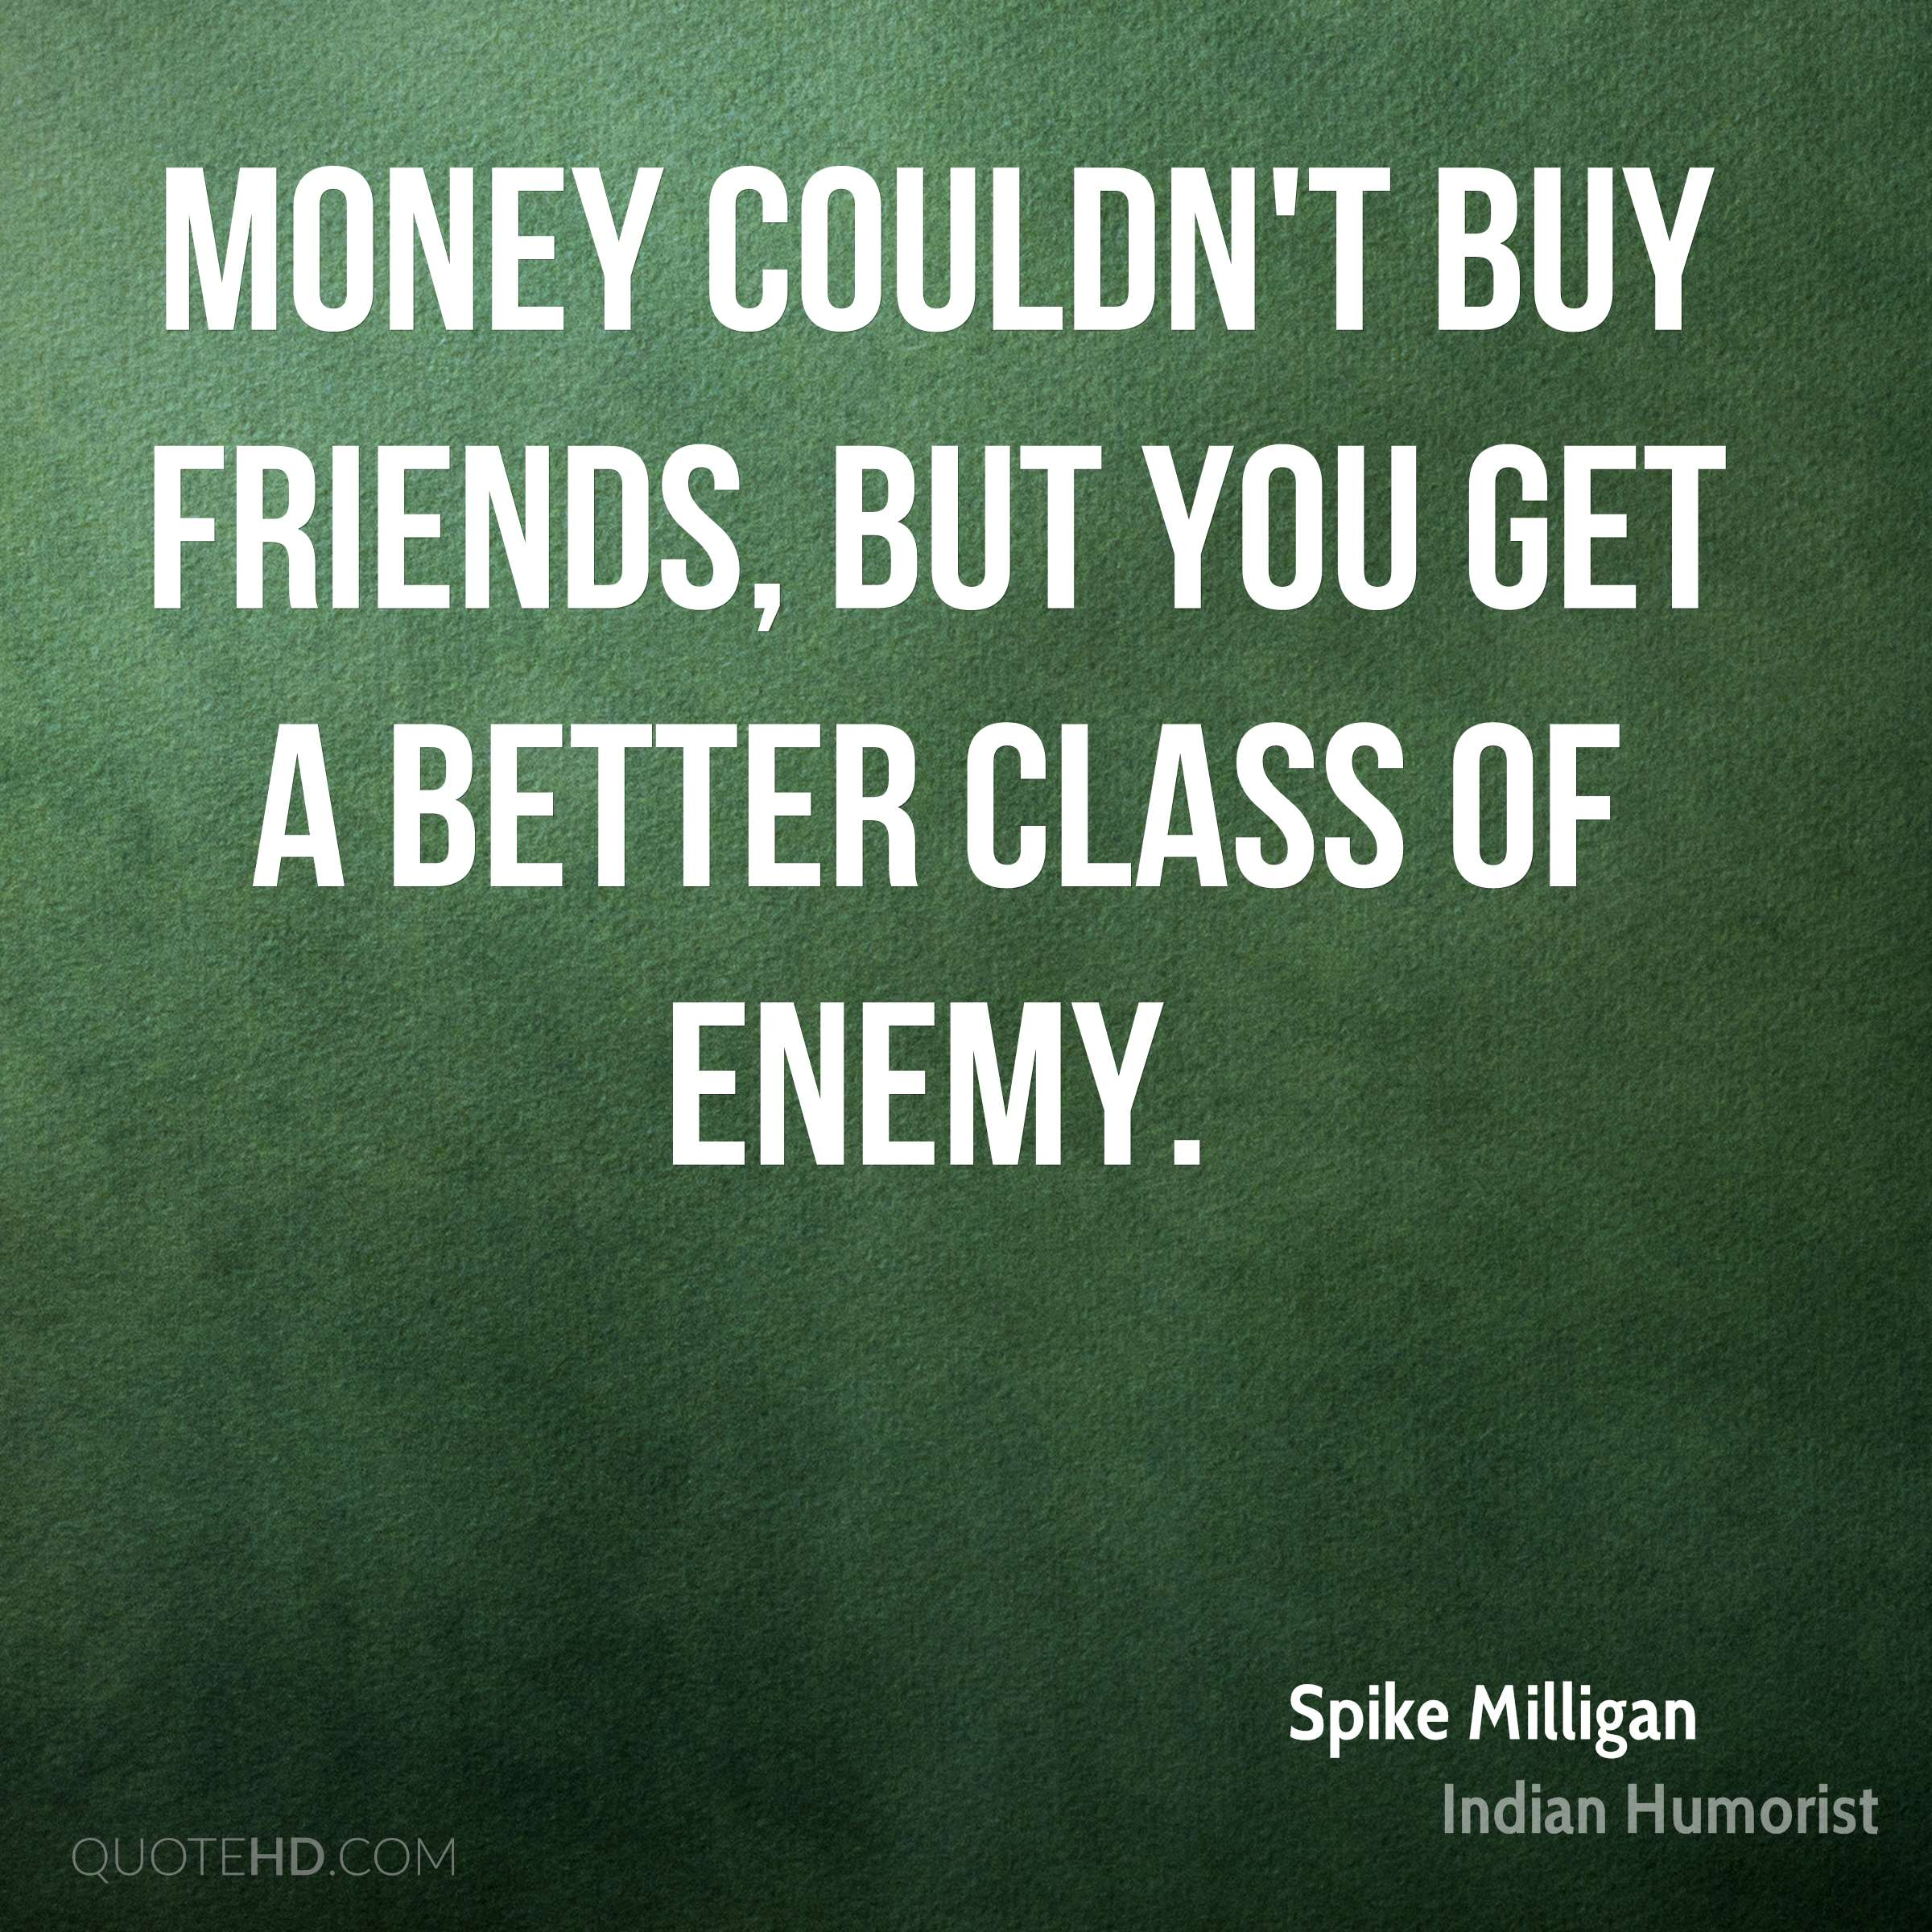 Money couldn't buy friends, but you get a better class of enemy.